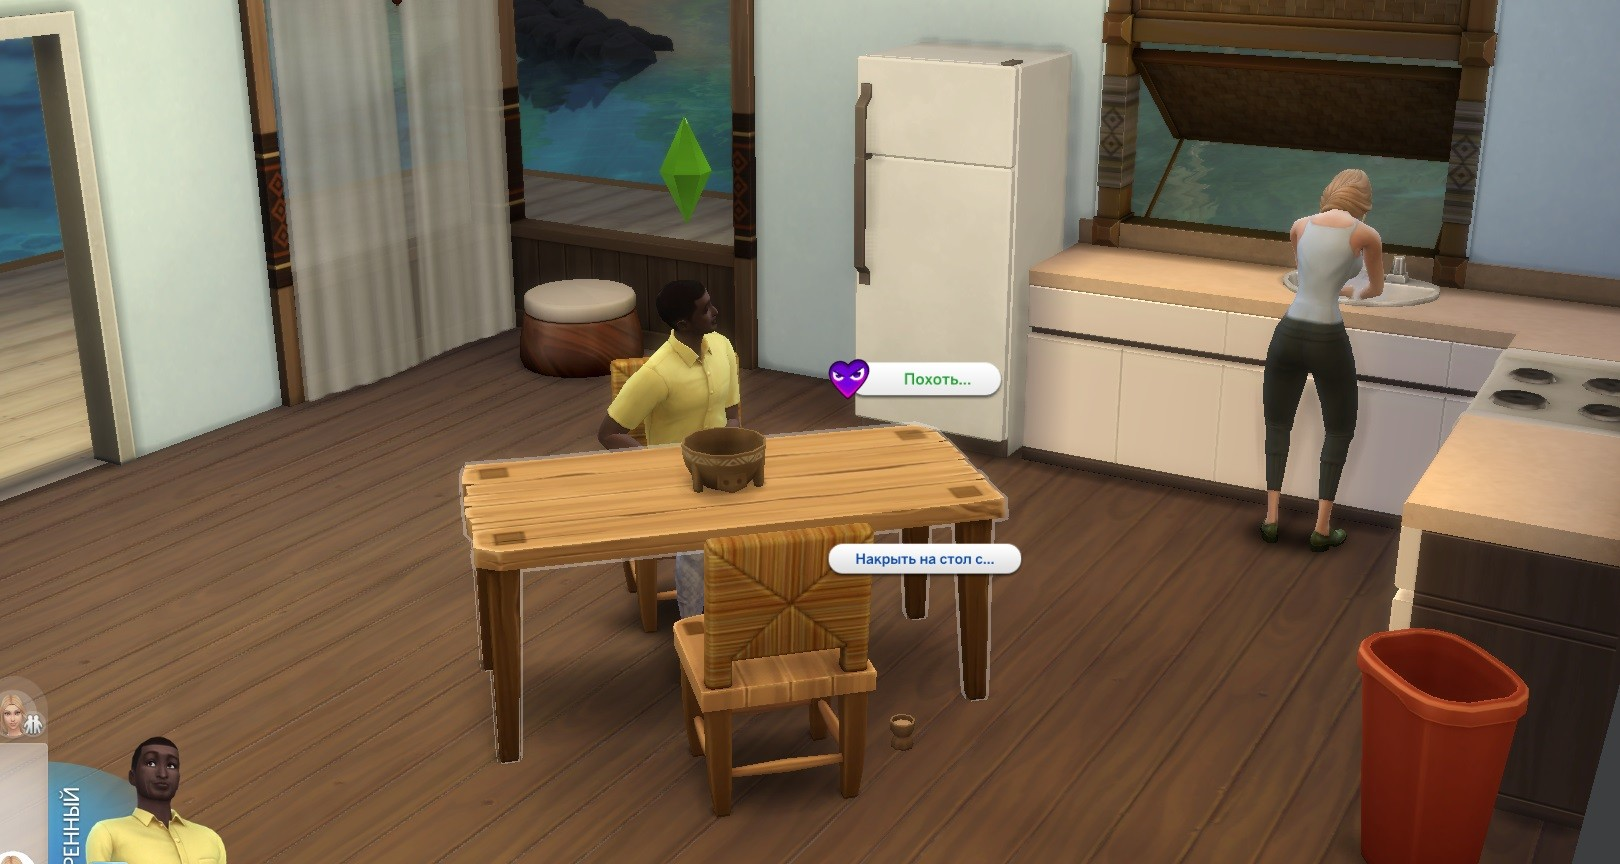 4 wicked sims woohoo mod the 'Sims 4':